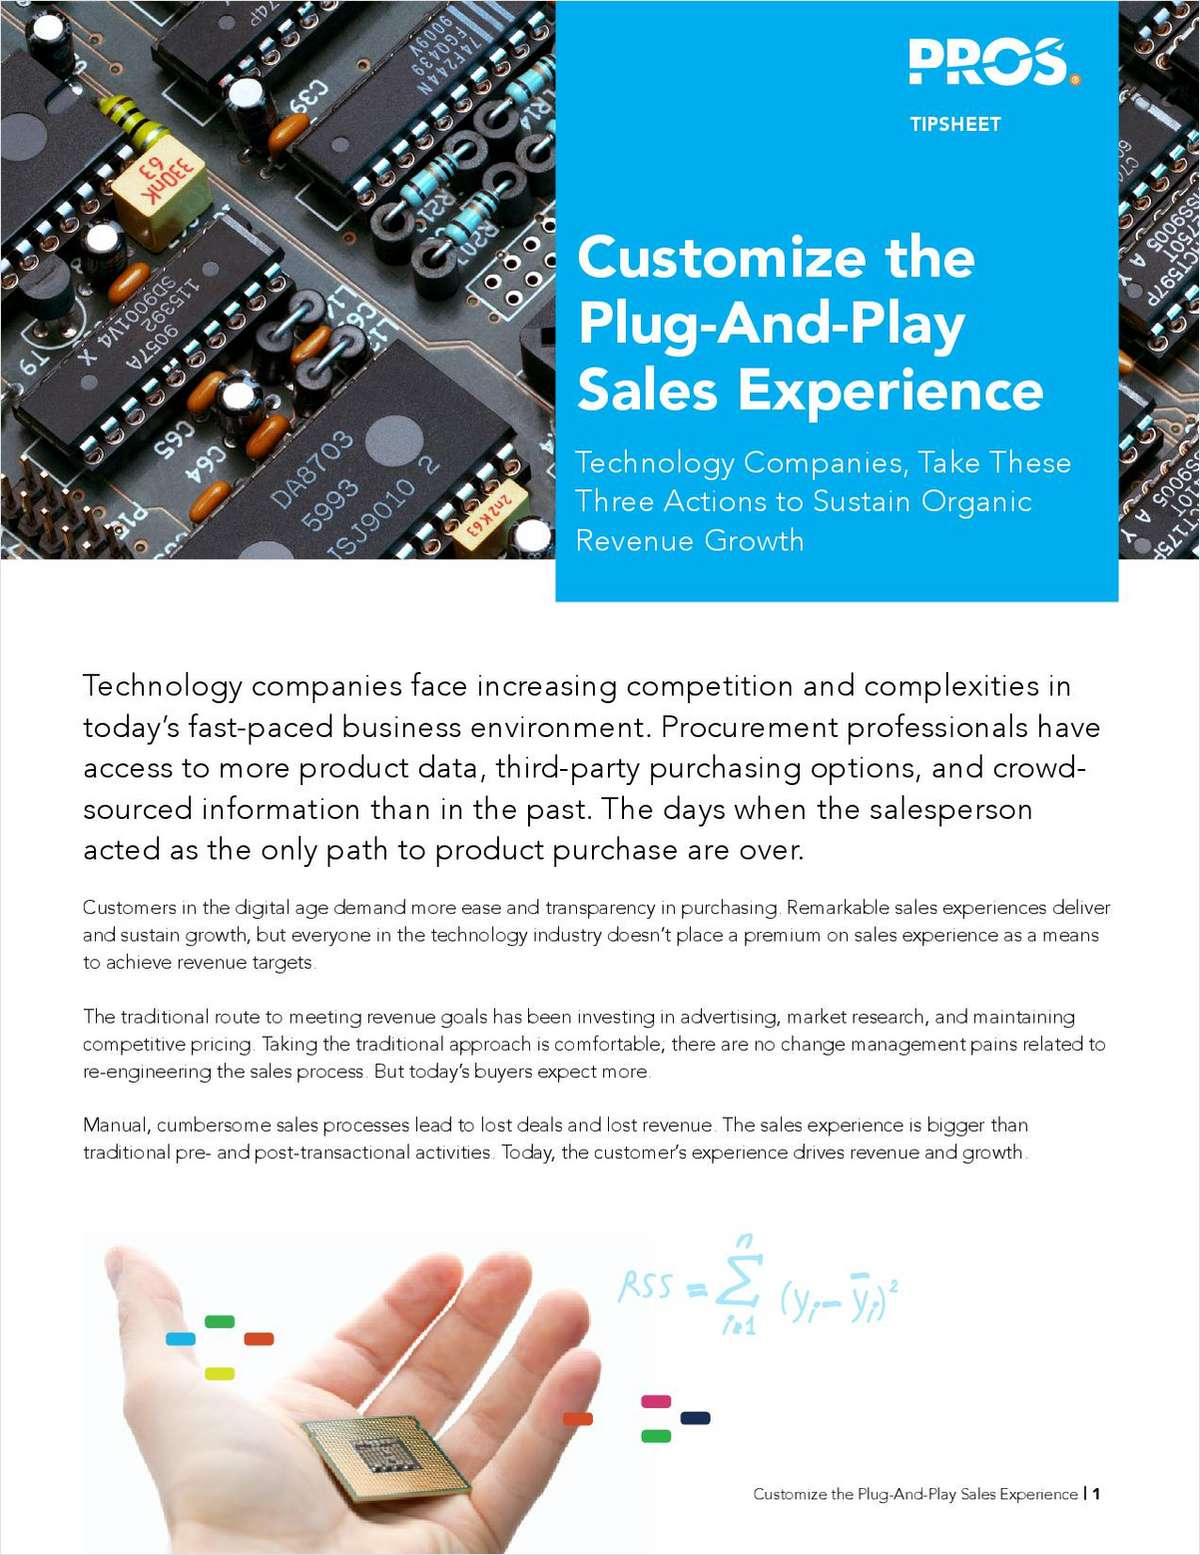 Customize The Plug-And-Play Sales Experience Technology Companies, Take These Three Actions to Sustain Organic Revenue Growth